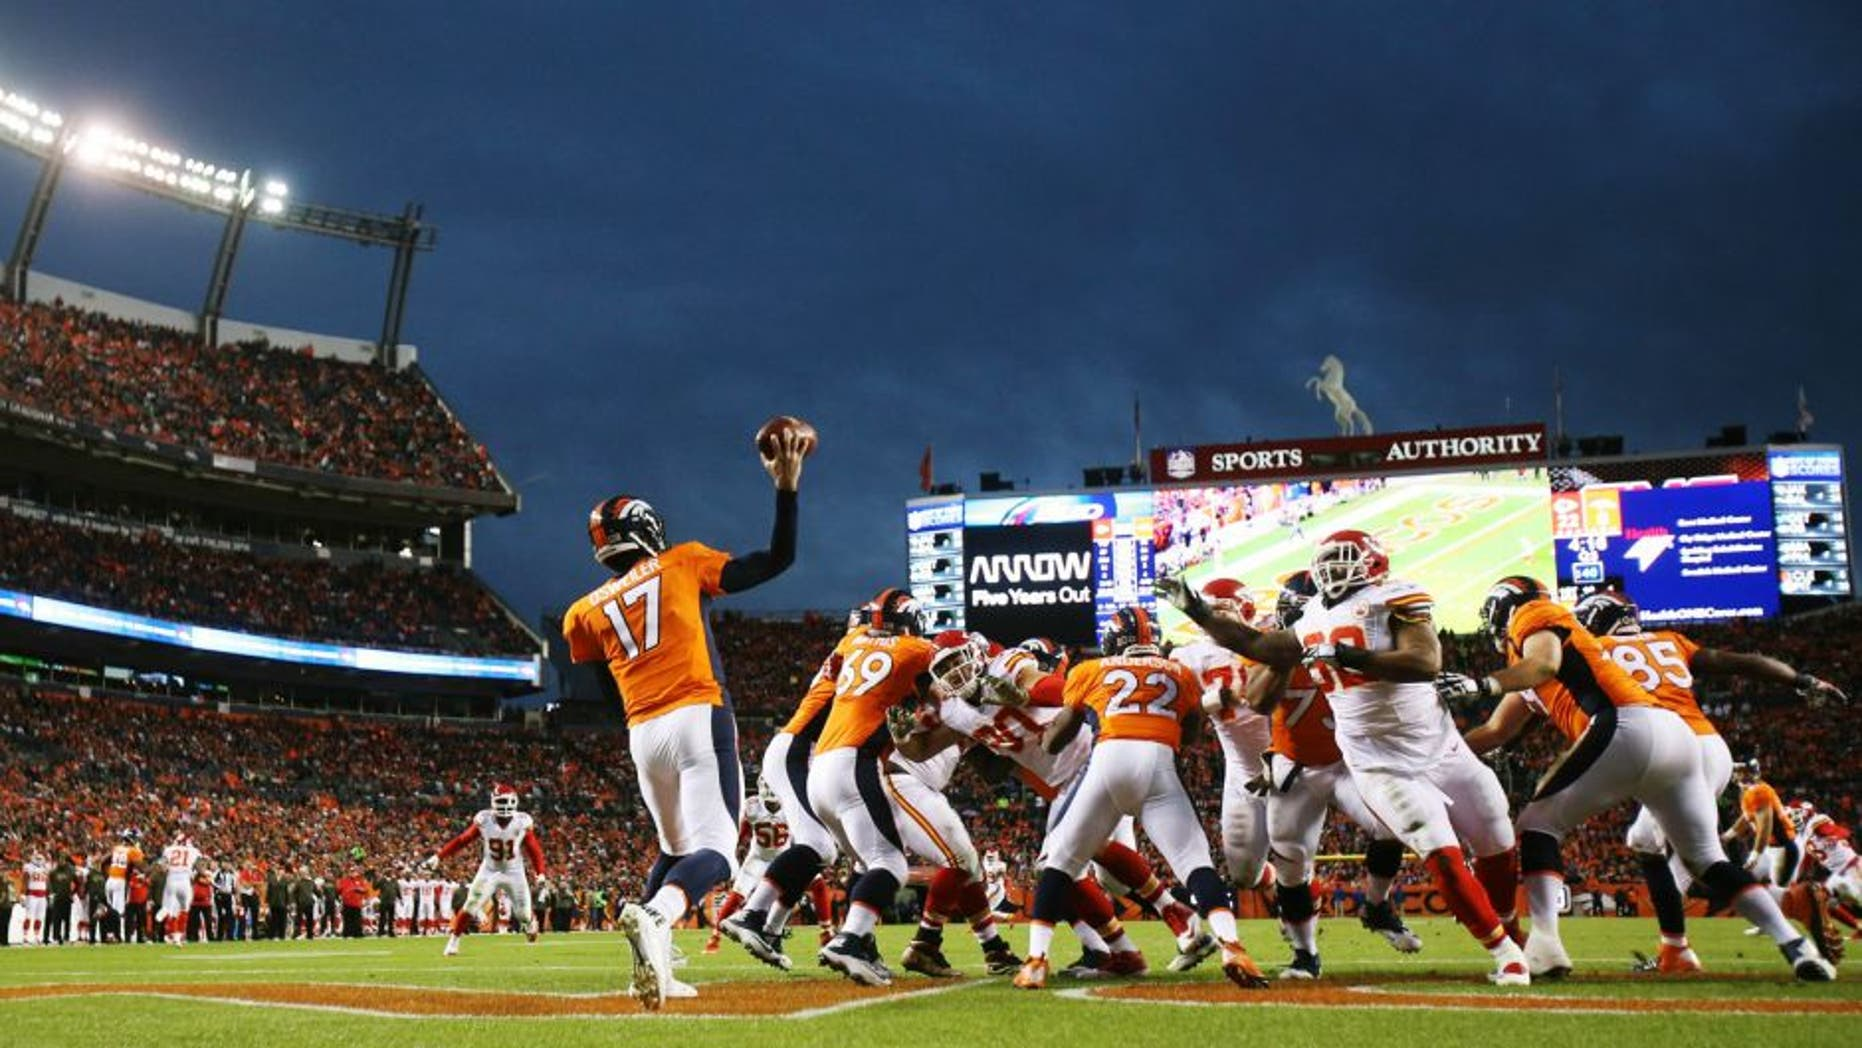 Nov 15, 2015; Denver, CO, USA; Denver Broncos quarterback Brock Osweiler (17) throws a pass during the second half against the Kansas City Chiefs at Sports Authority Field at Mile High. The Chiefs won 29-13. Mandatory Credit: Chris Humphreys-USA TODAY Sports